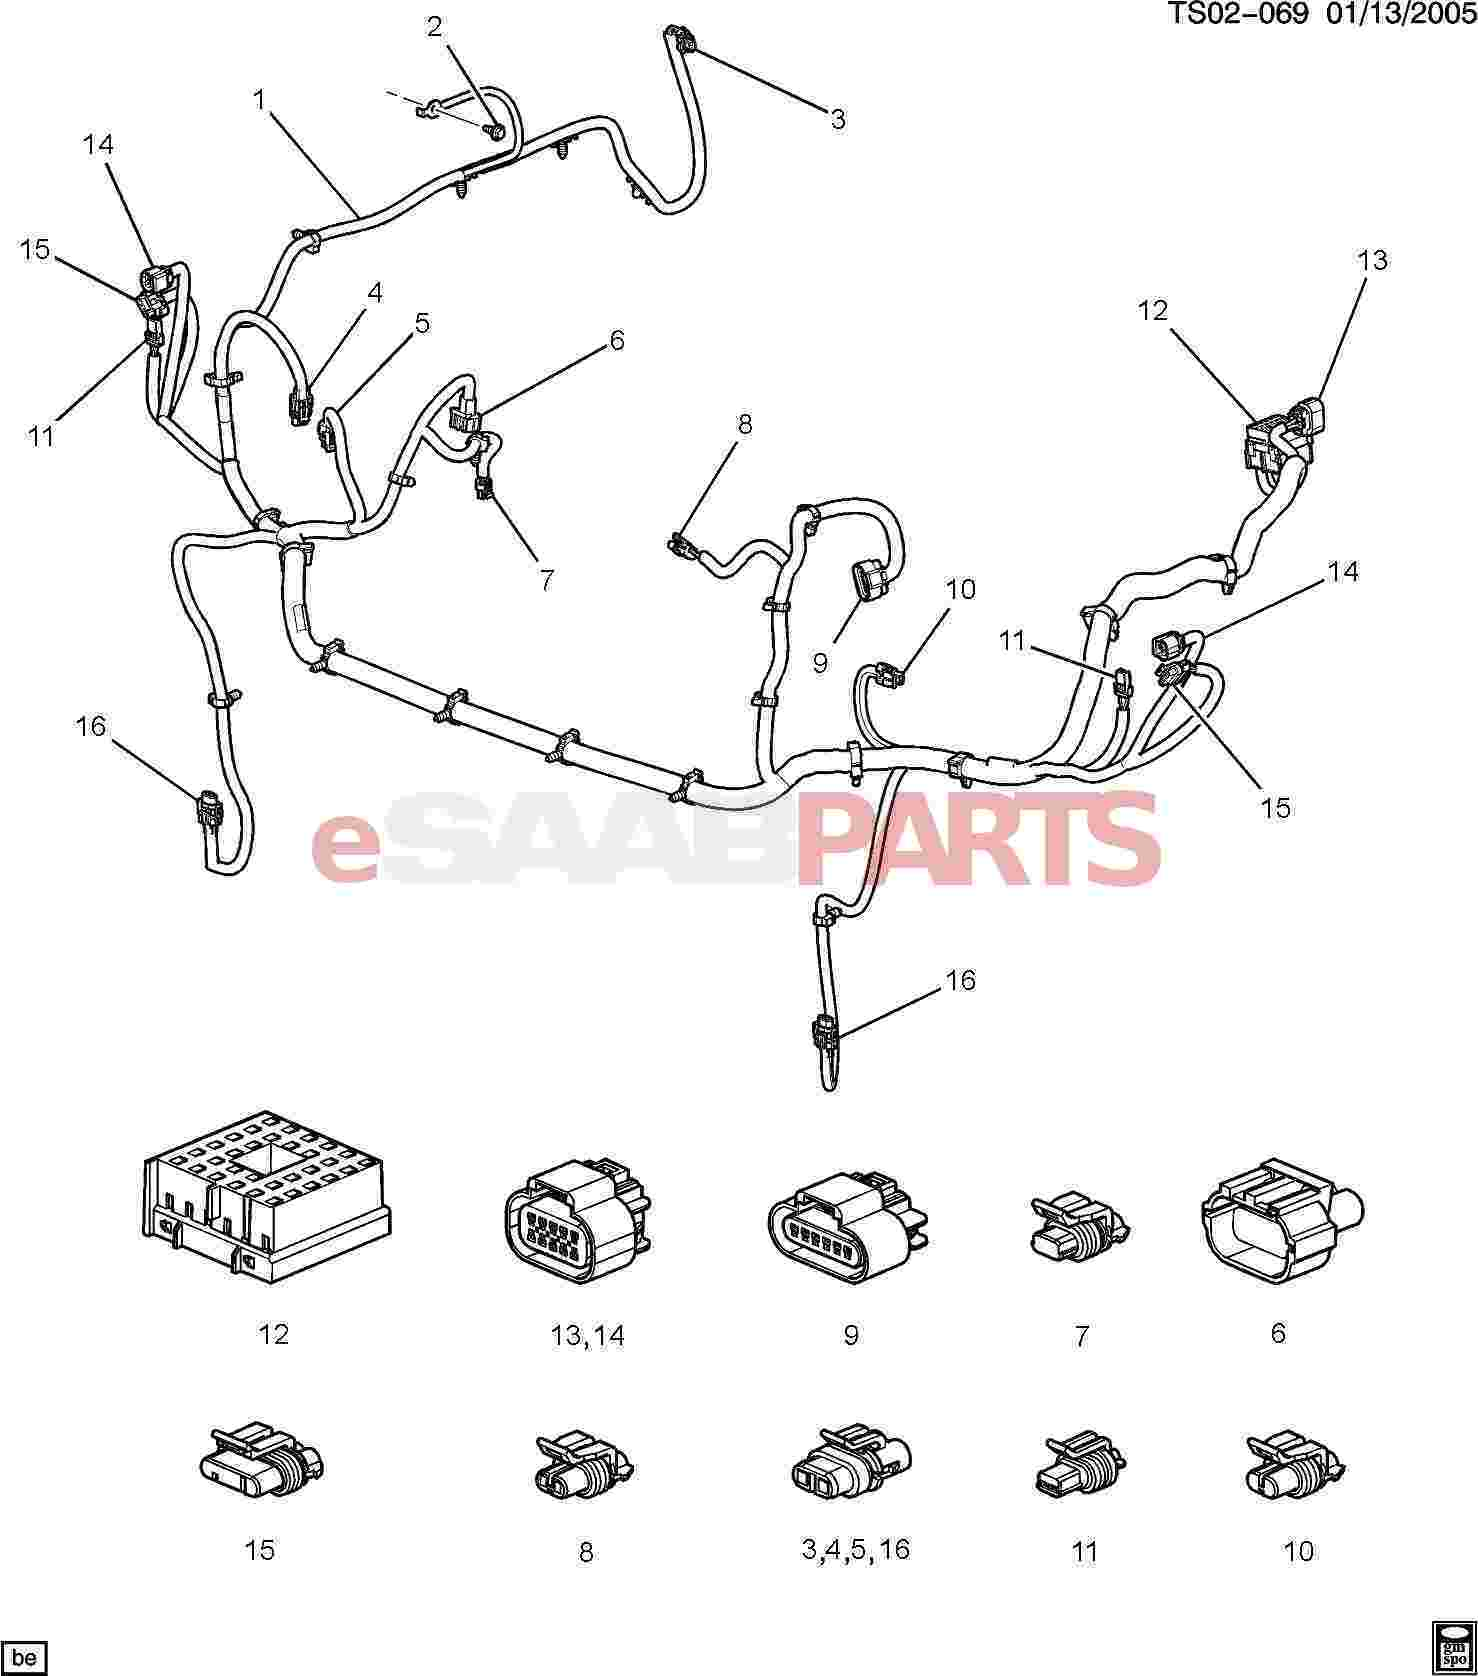 hight resolution of esaabparts com saab 9 7x electrical parts wiring harness wiring harness front lamps